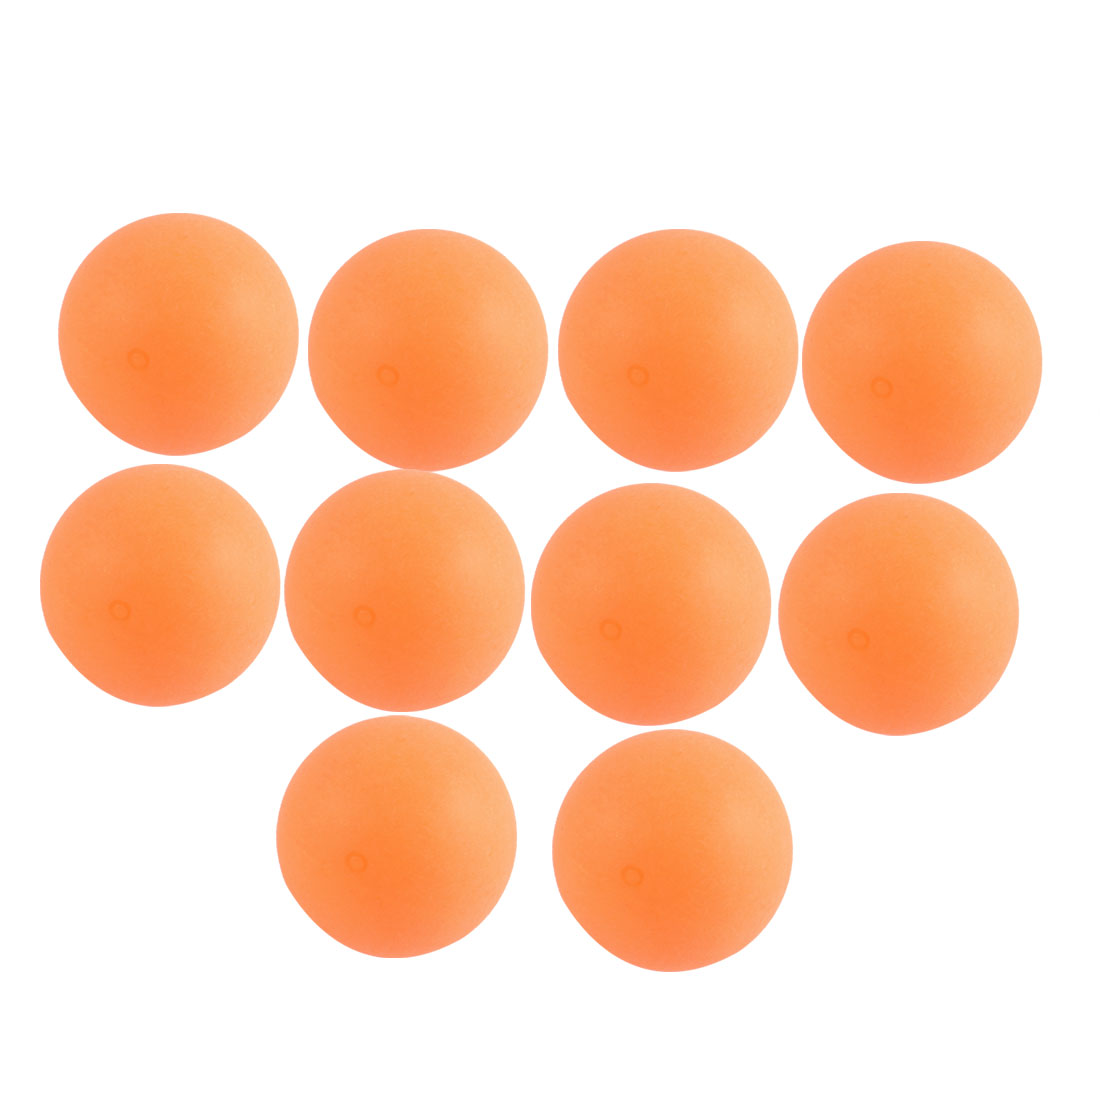 10 pcs 40mm diameter packed leisure ping pong balls table for 100 table tennis balls